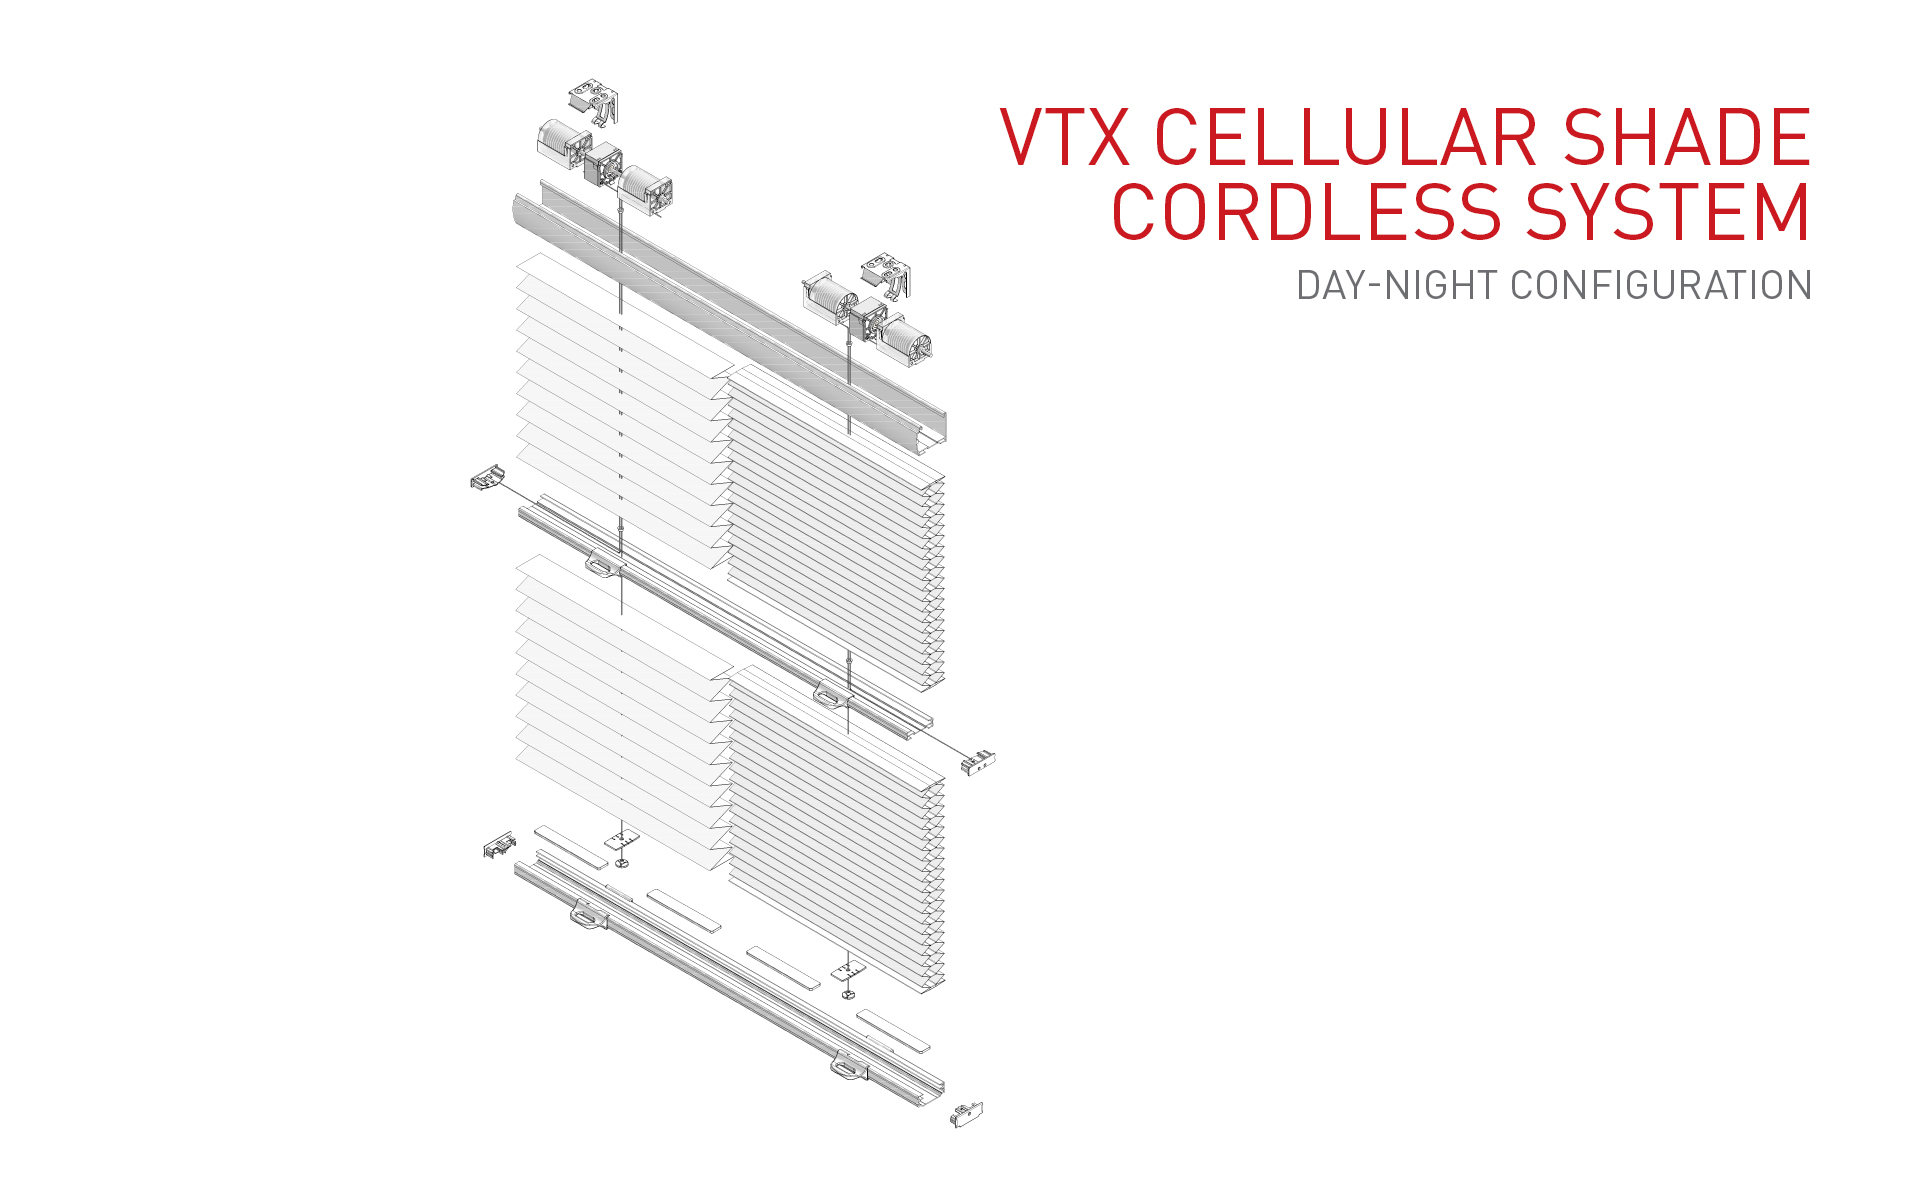 VTX_Cellular_Shade_Cordless_System_Day-Night_Configuration.jpg